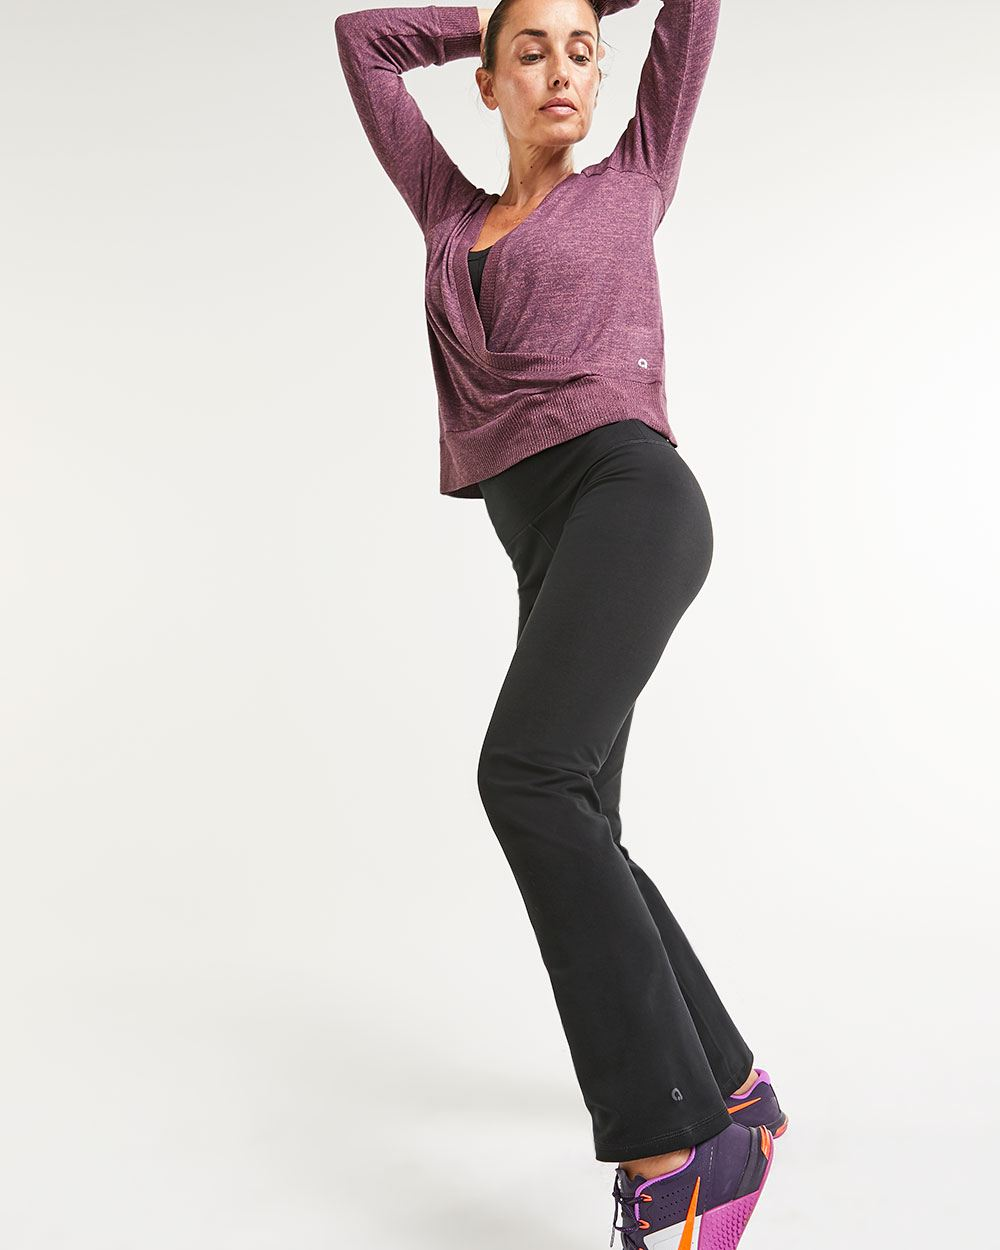 Cotton Blend Straight Pants Namaste Hyba